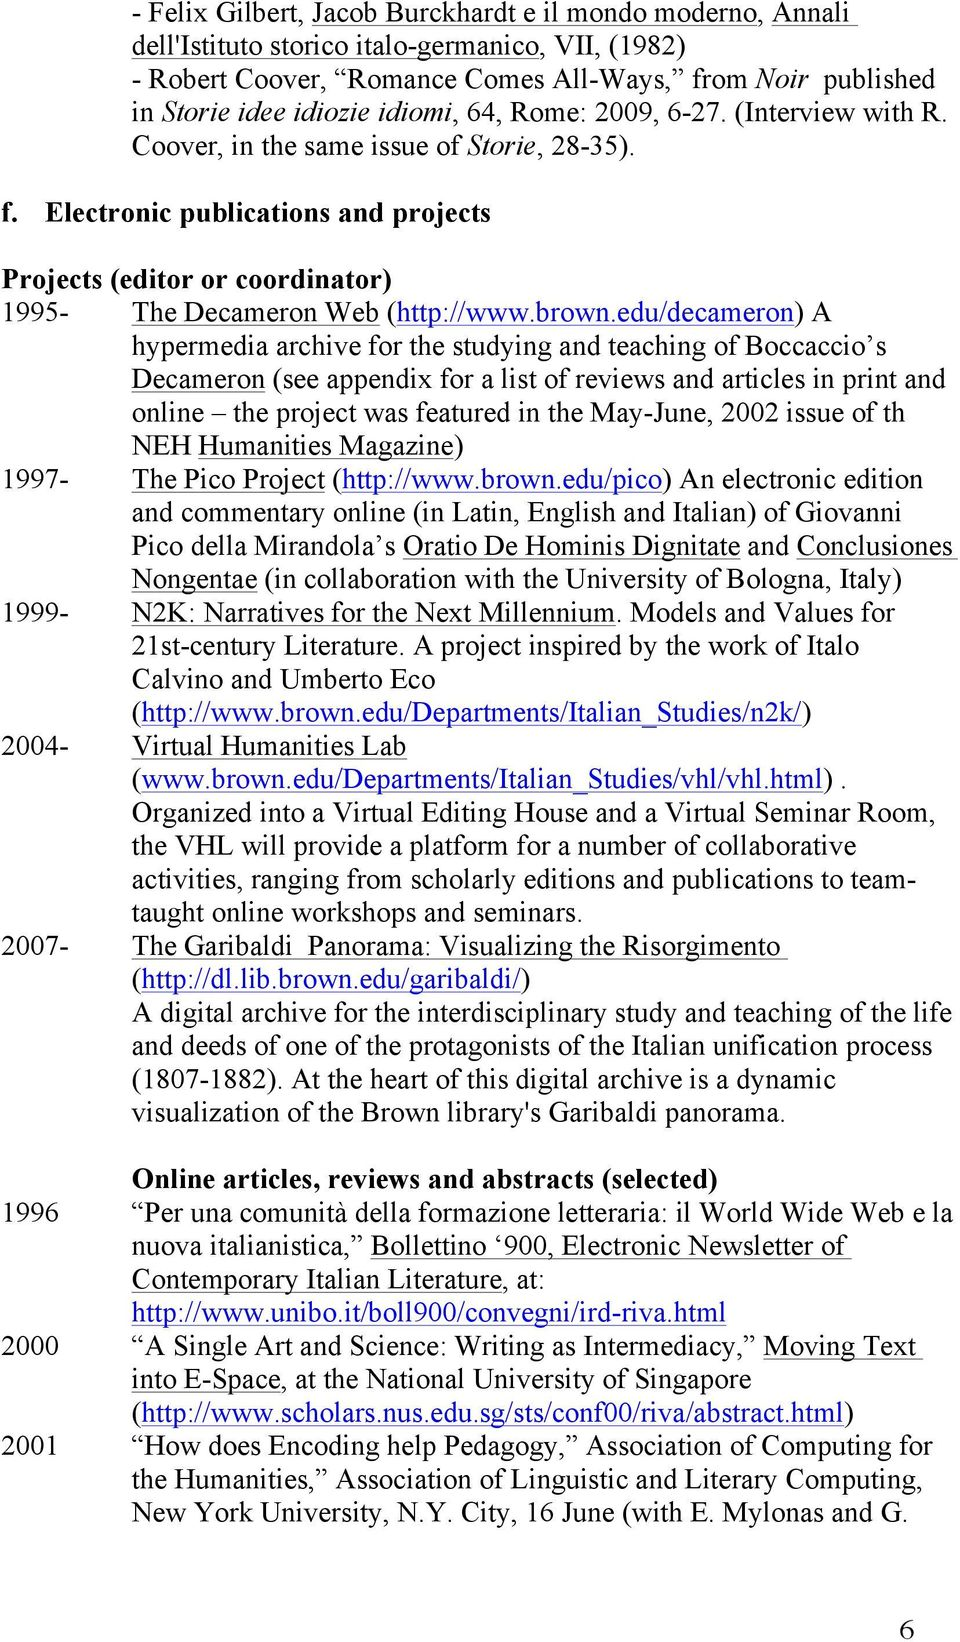 Electronic publications and projects Projects (editor or coordinator) 1995- The Decameron Web (http://www.brown.